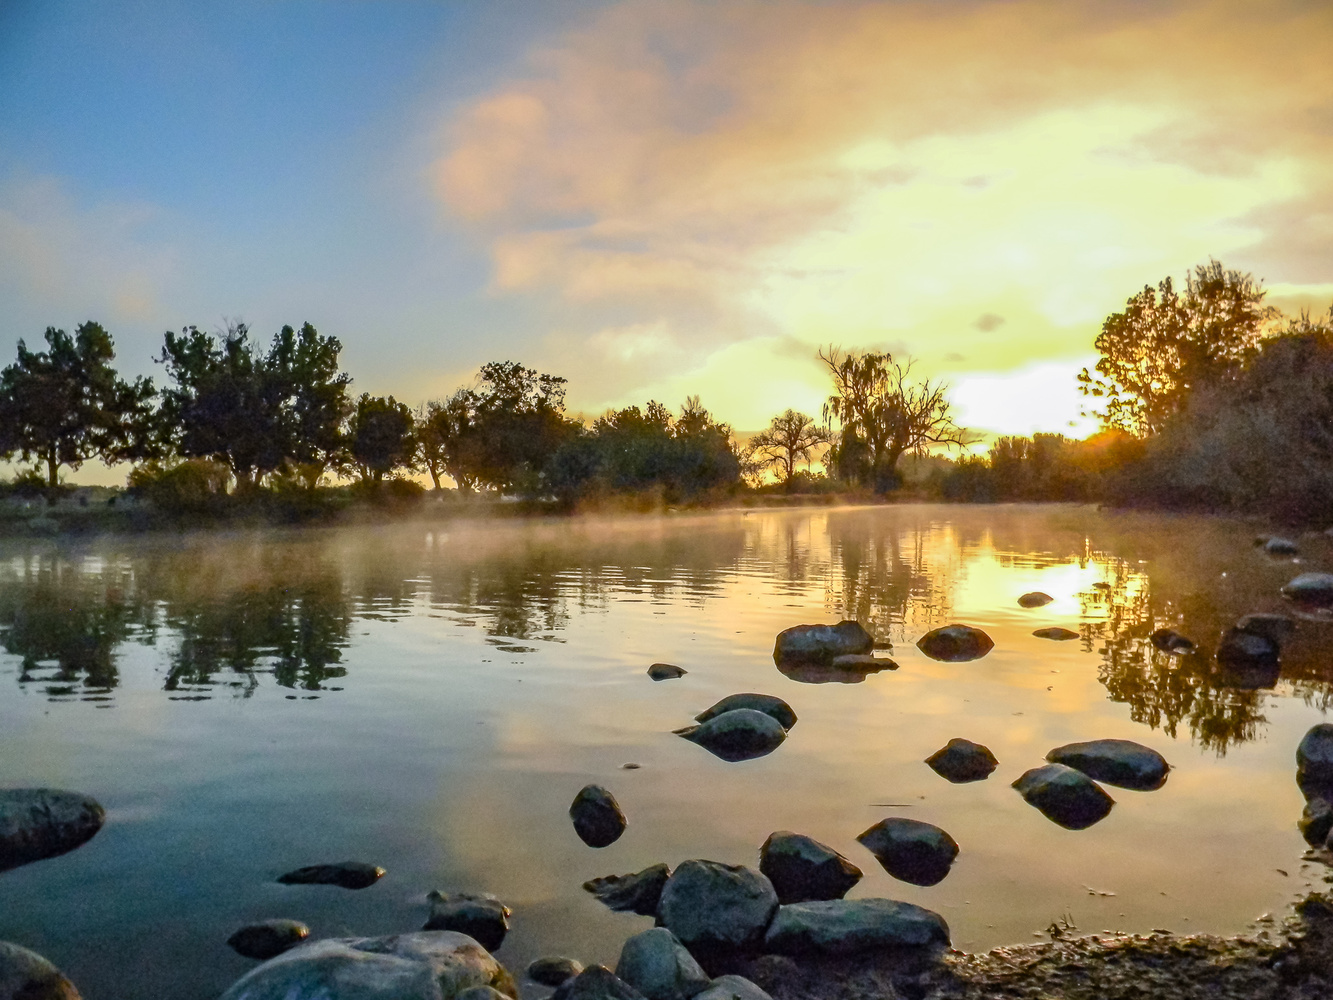 A cool serene morning by Chris Snyder